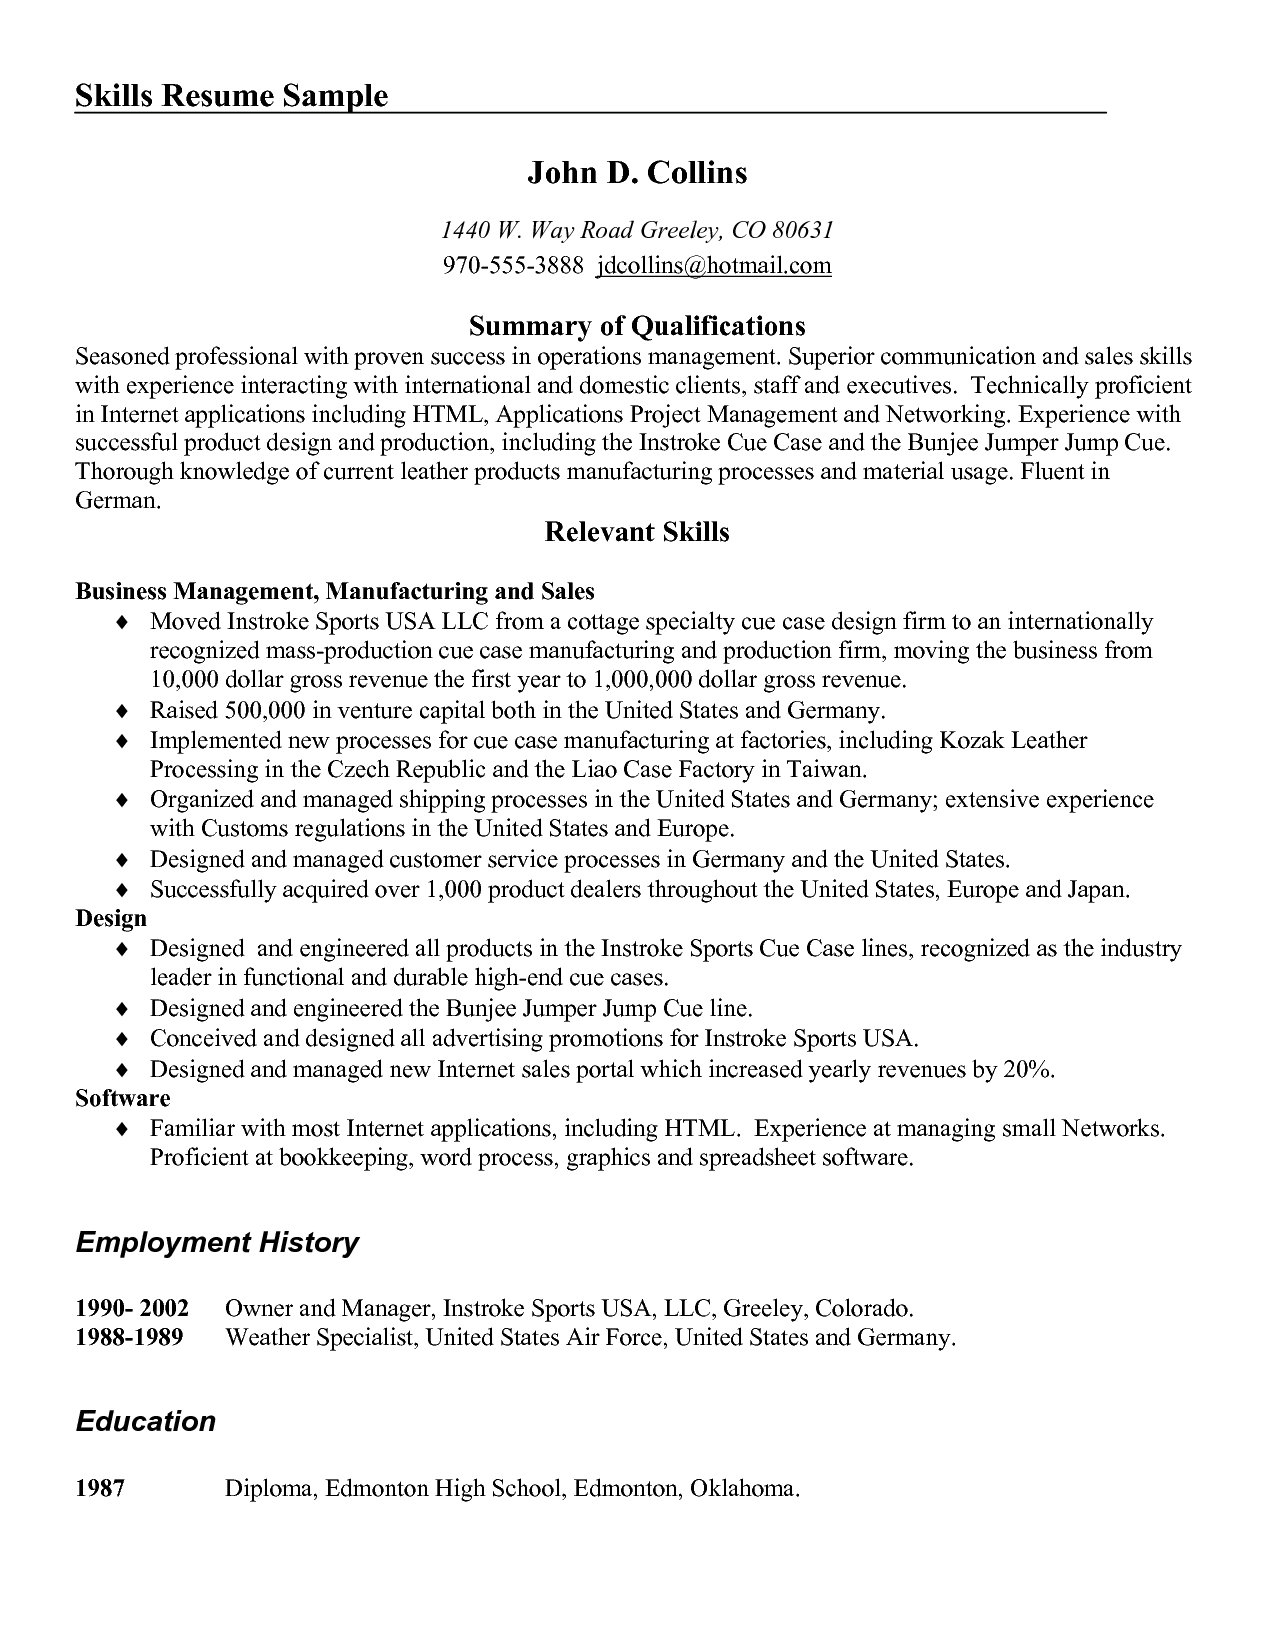 Image Result For Skill Based Resume Examples   Skills Resume Example